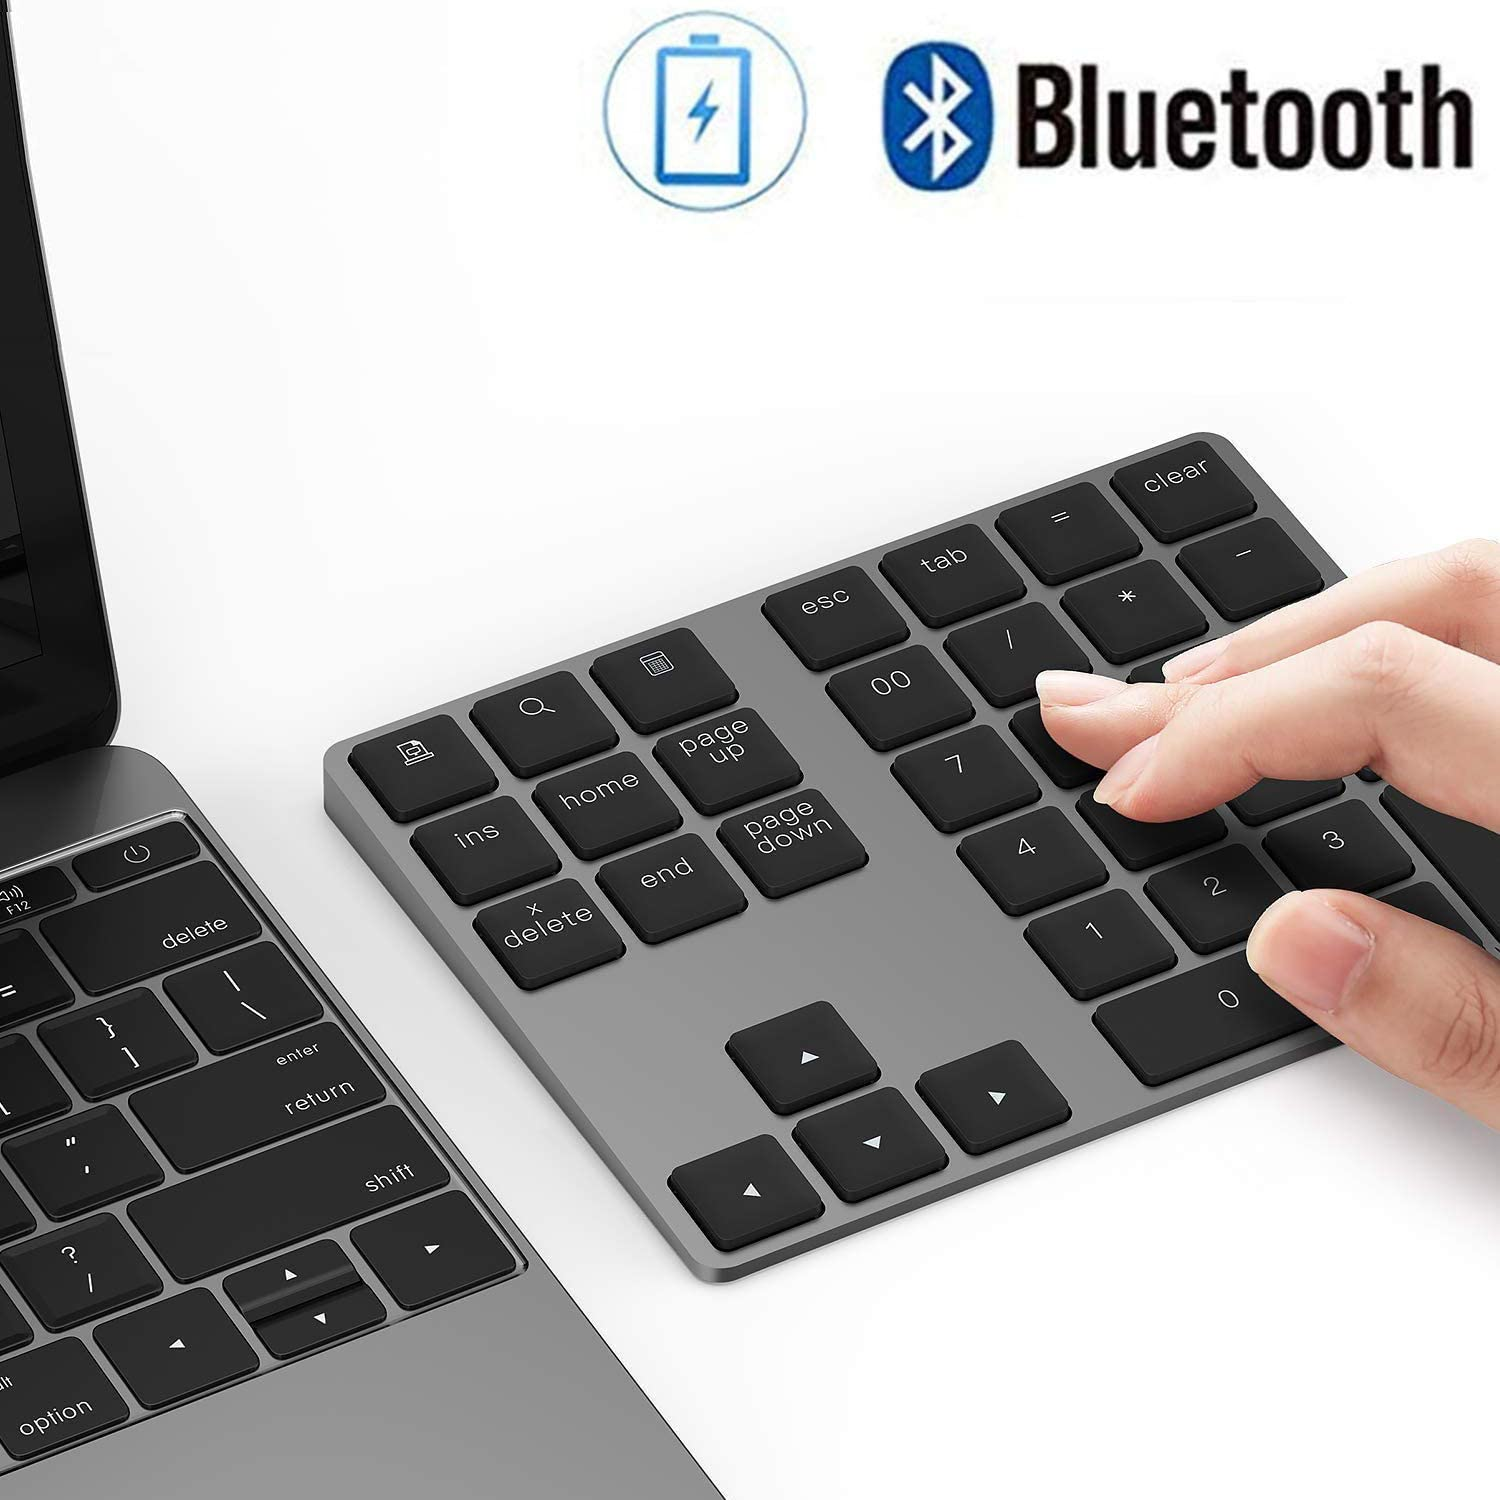 Bluetooth Number Pad, Lekvey Aluminum Rechargeable Wireless Numeric Keypad Slim 34-Keys External Numpad Keyboard Data Entry Compatible for Macbook, MacBook Air/Pro, iMac Windows Laptop Surface Pro etc